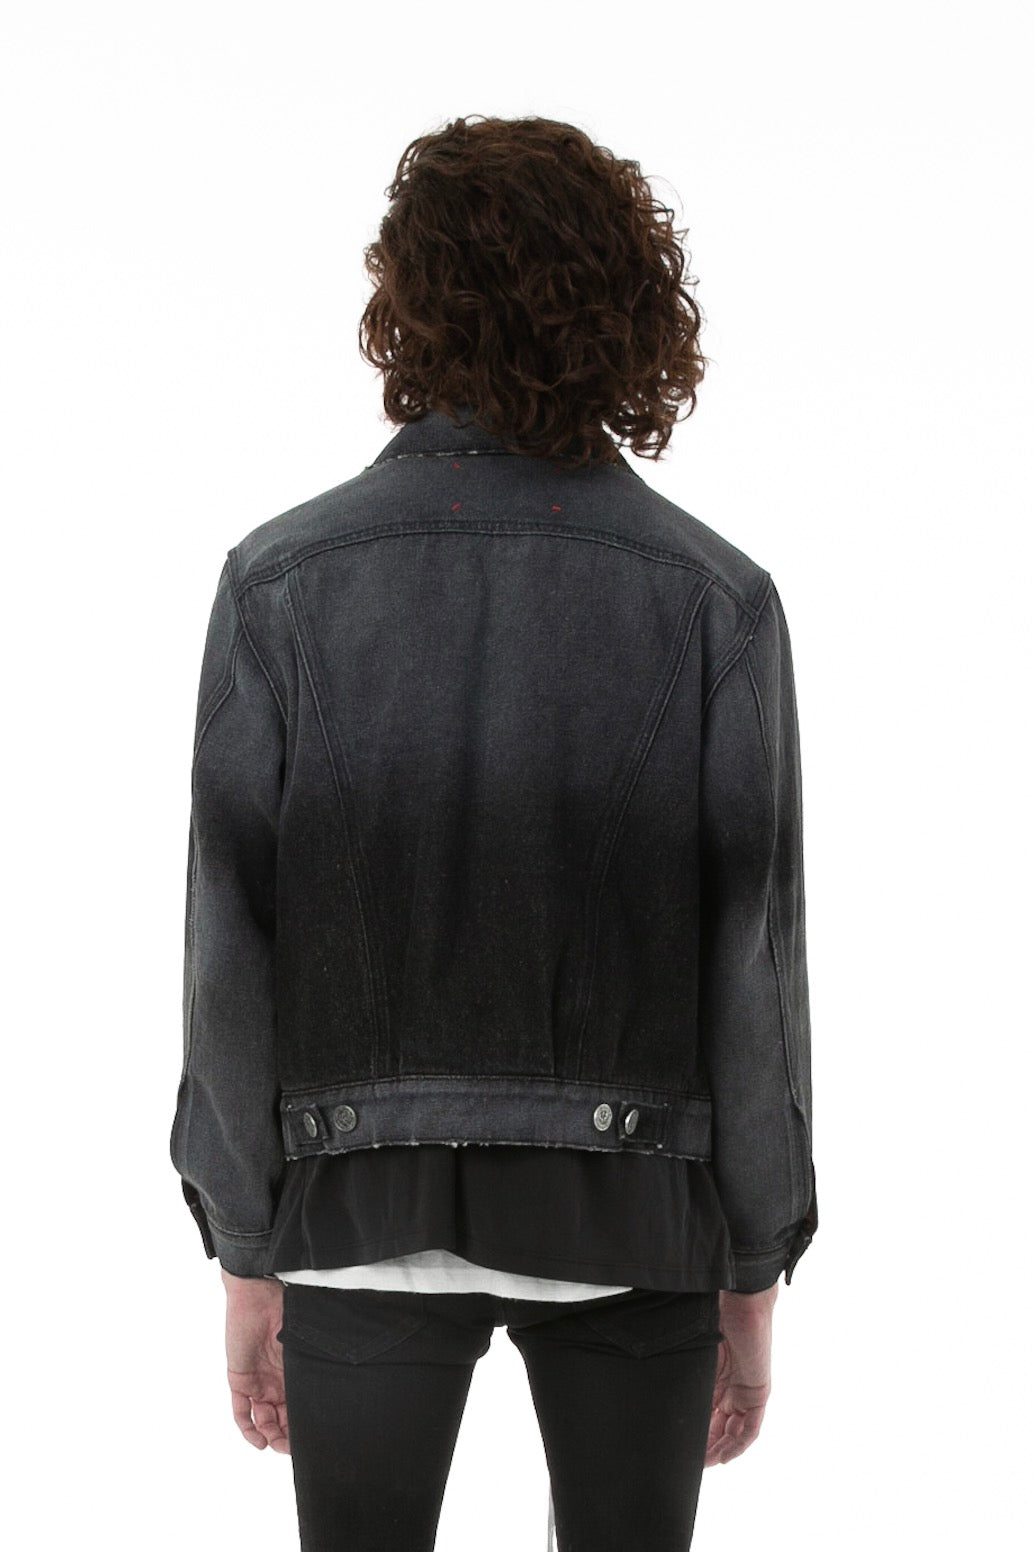 Backside of male model wearing Black Truffle Denim jacket